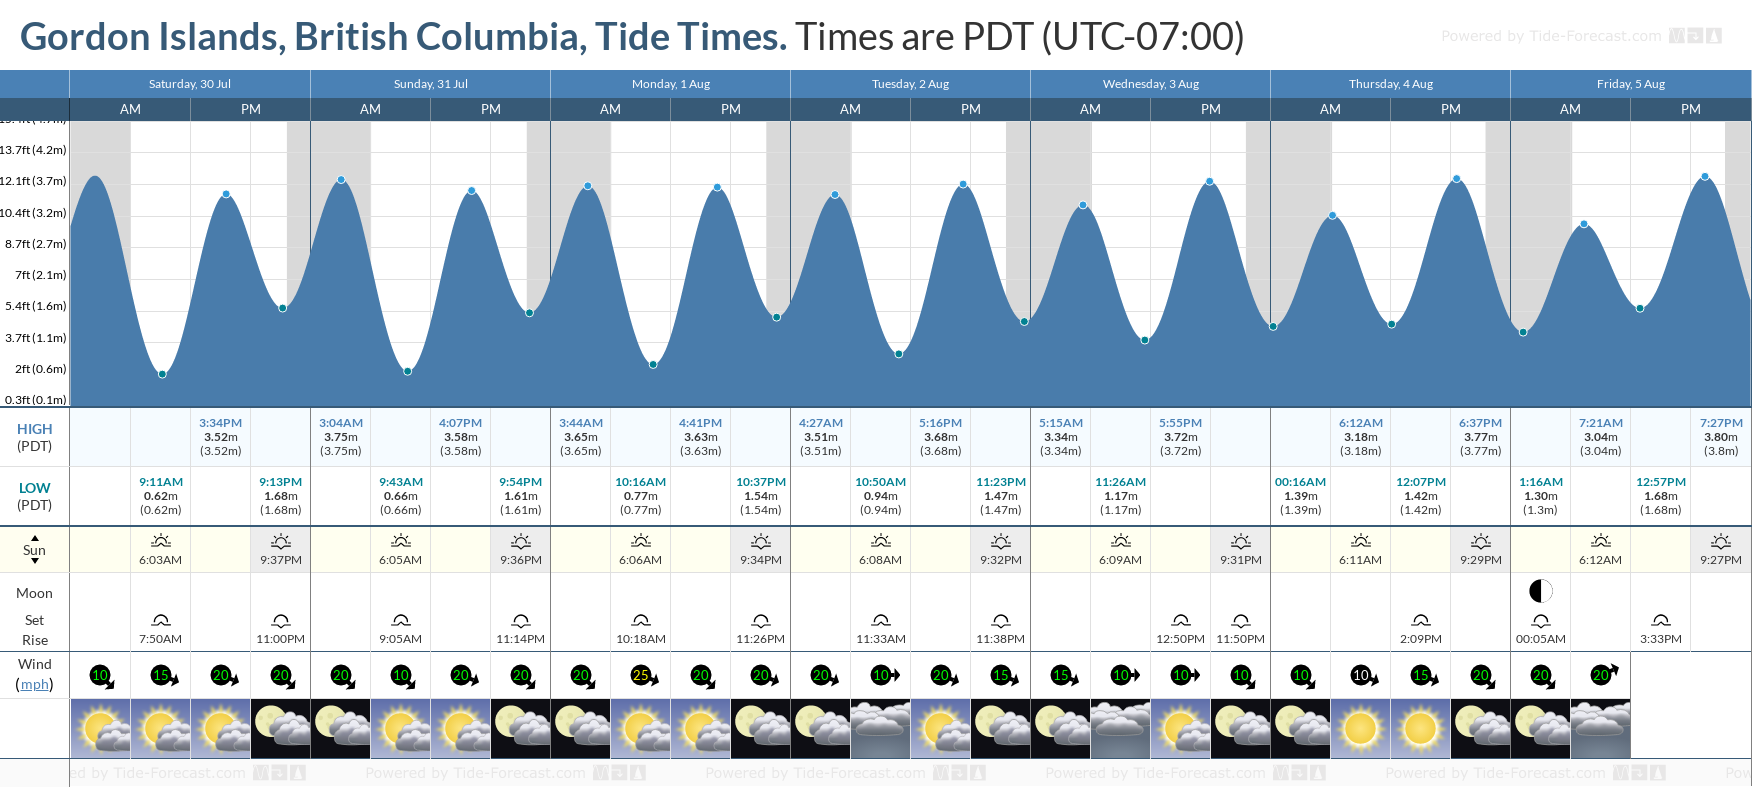 Gordon Islands, British Columbia Tide Chart including high and low tide tide times for the next 7 days